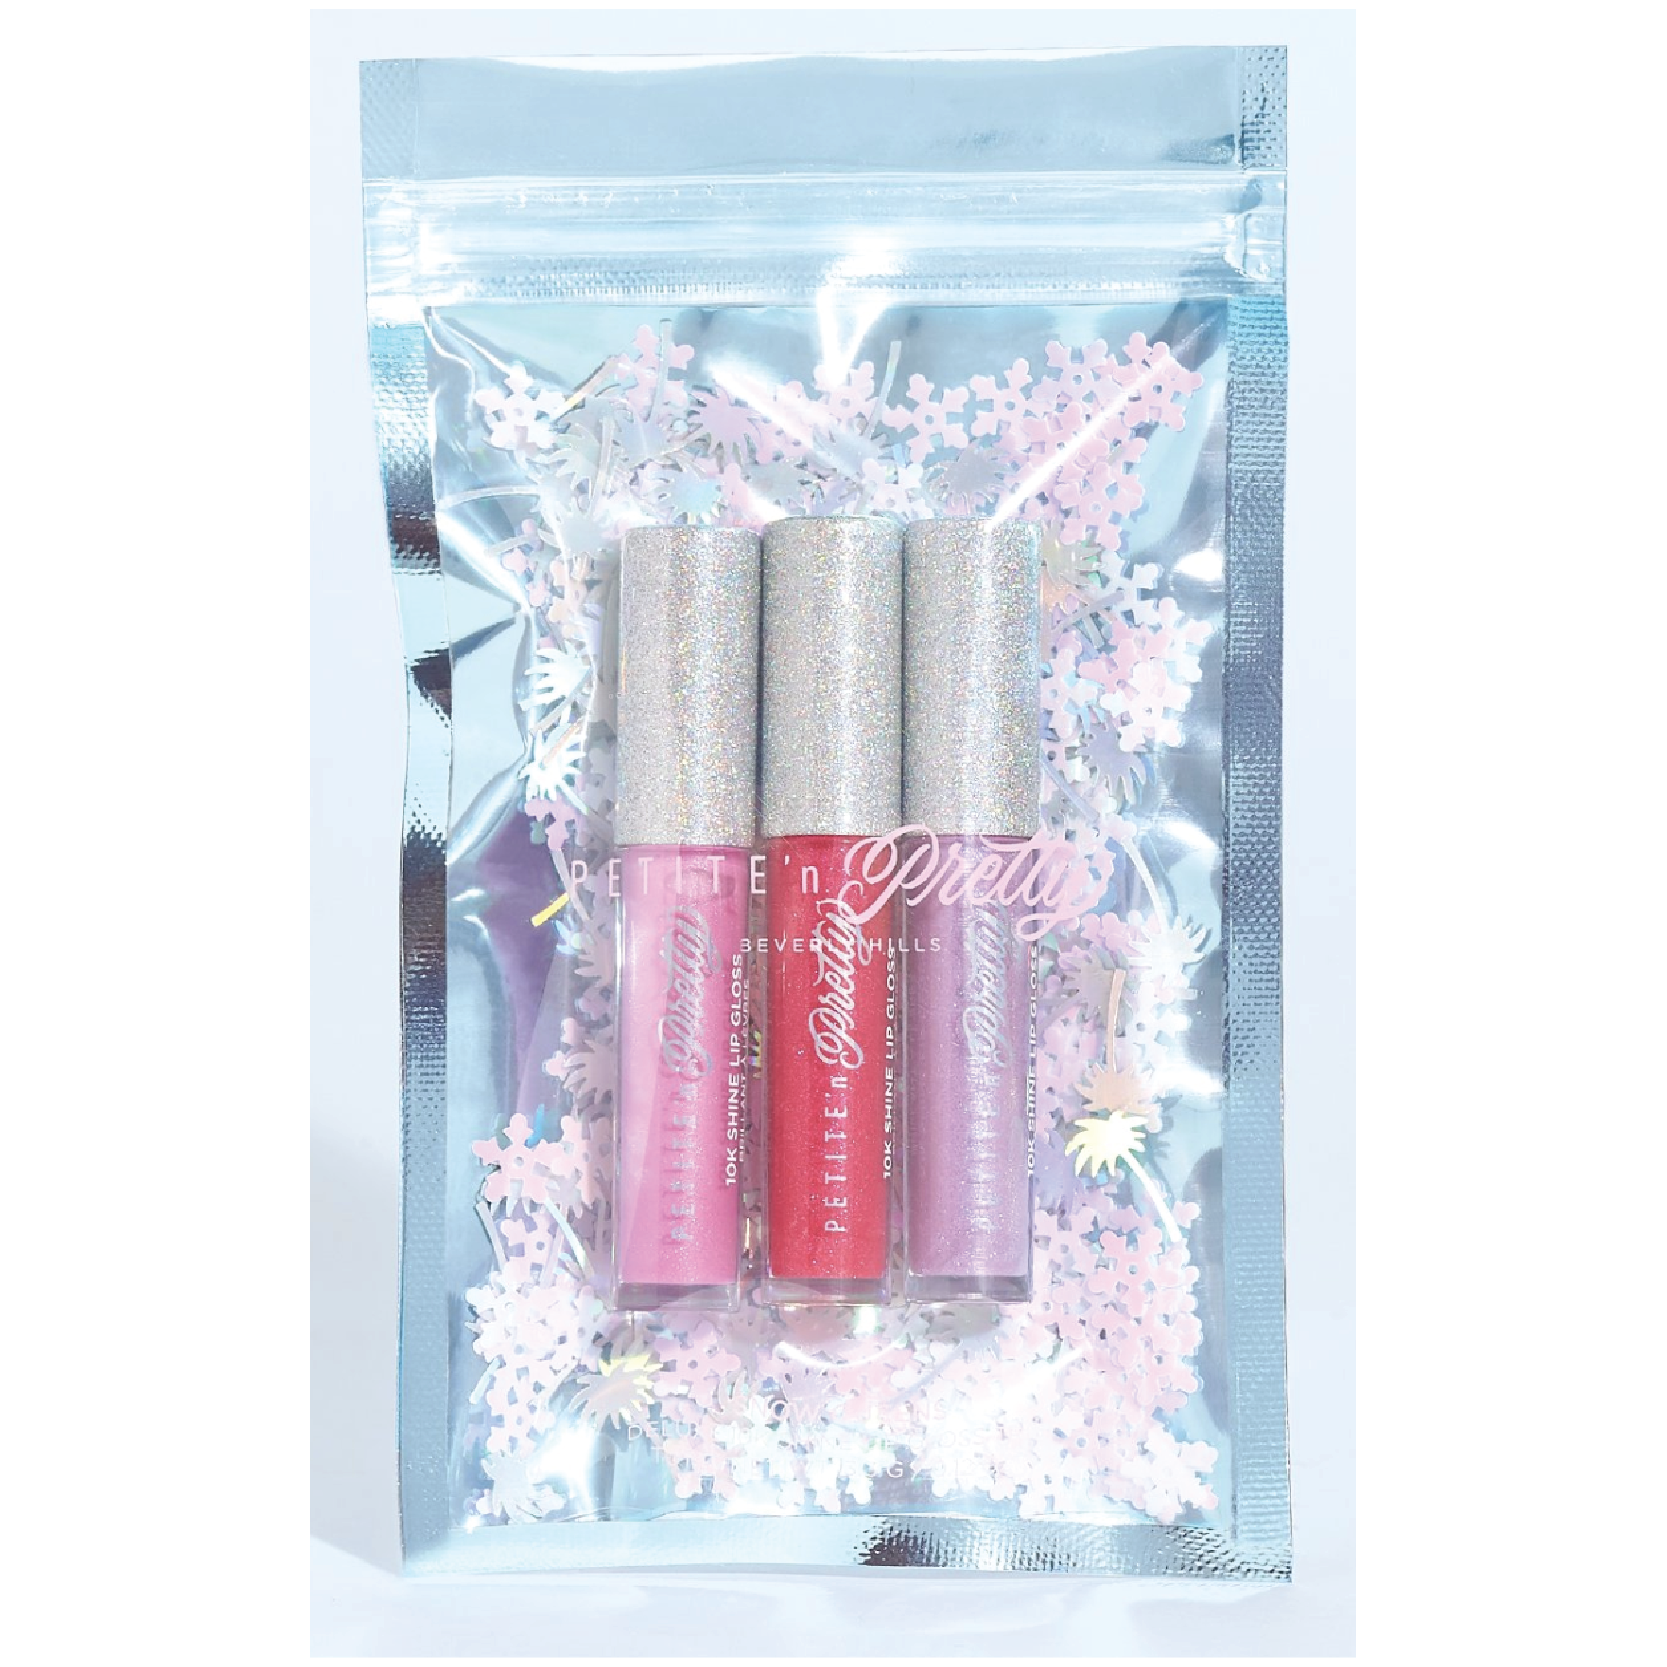 Petite 'n Pretty Snow Queens 10k Shine Trio - $20 at Petite 'n PrettyThis brand aims to encourage creativity and individuality in kids by playing with makeup. Their clean, kid-safe products are perfect for spoiling a little prince or princess.